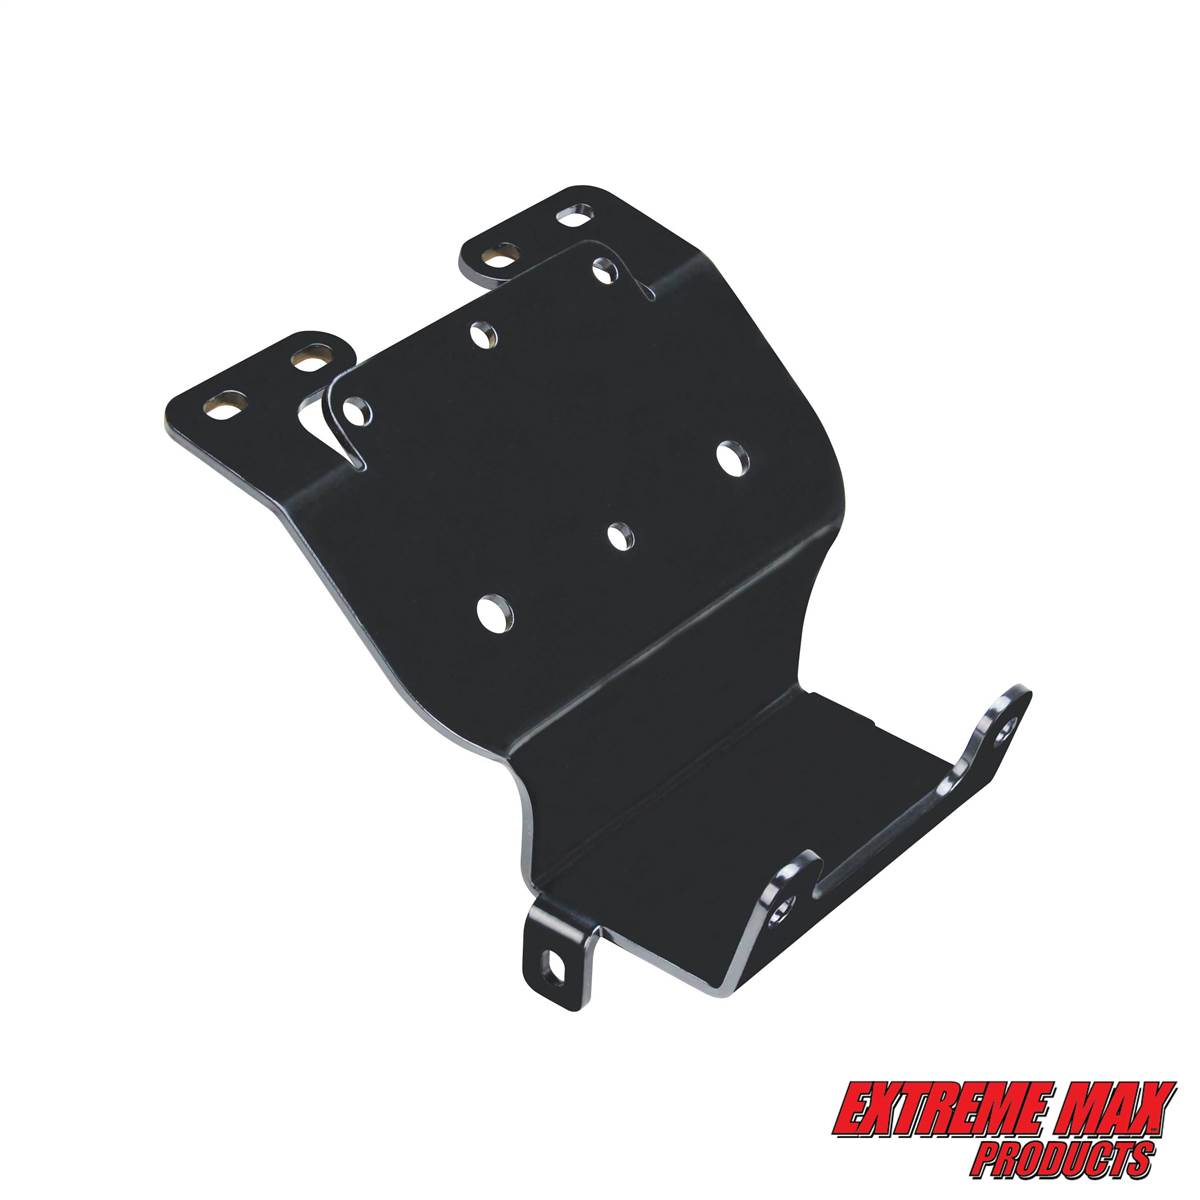 Extreme Max 56003166 Atv Winch Mount For 1993 2000 Honda Fourtrax 300 Yamaha Kodiak 450 Wiring Diagram